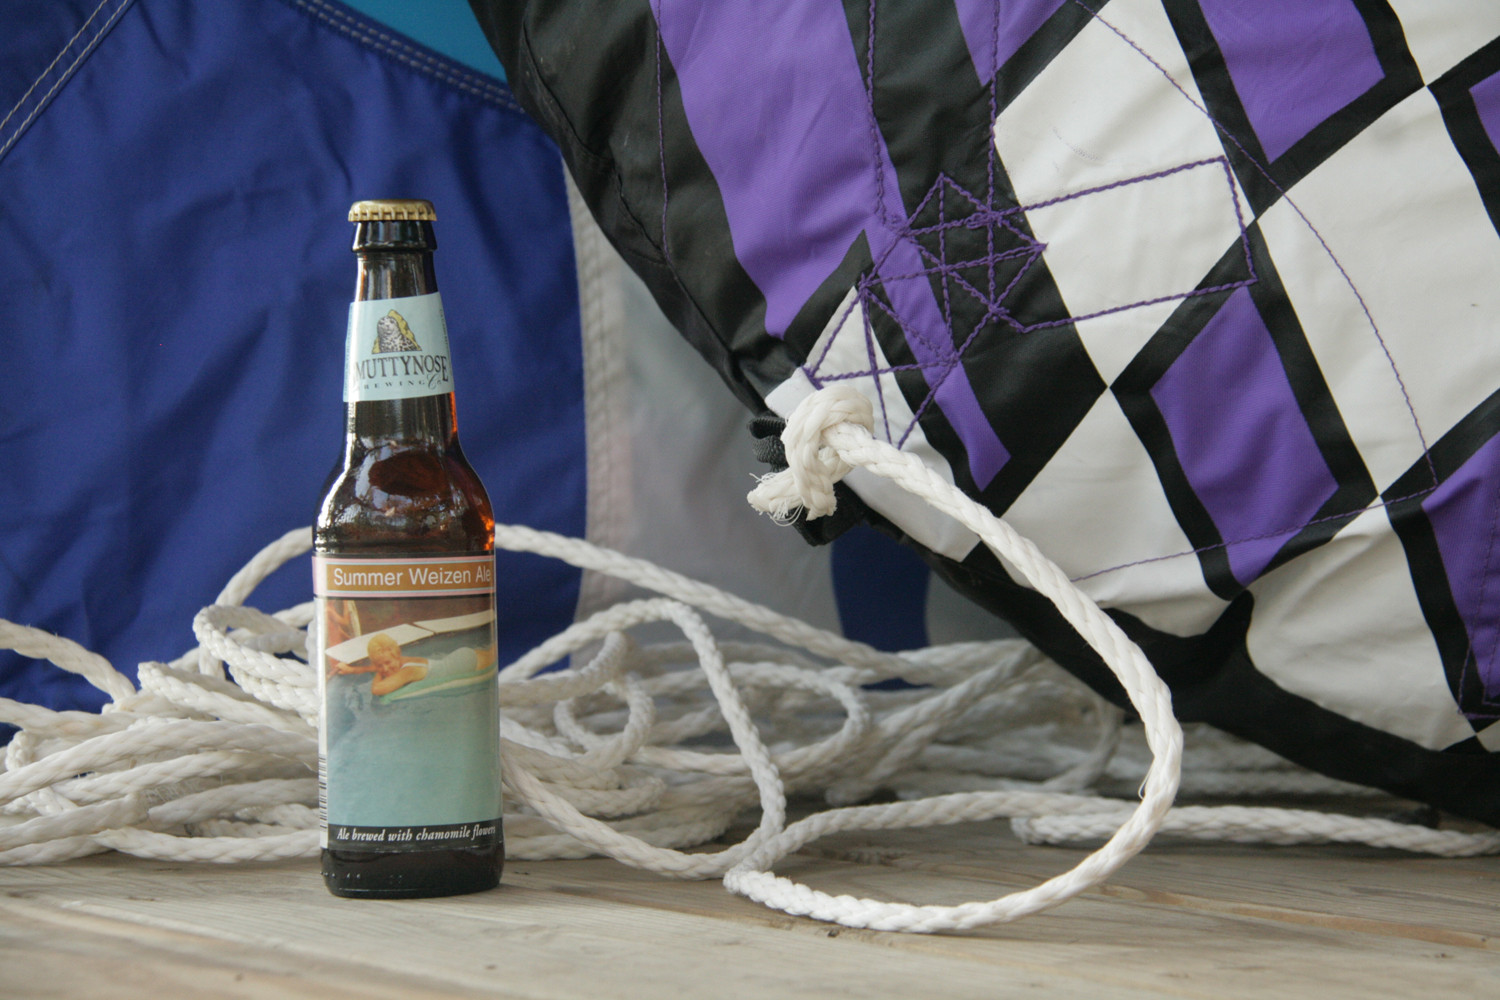 Try Smuttynose Summer pale wheat ale this summer.